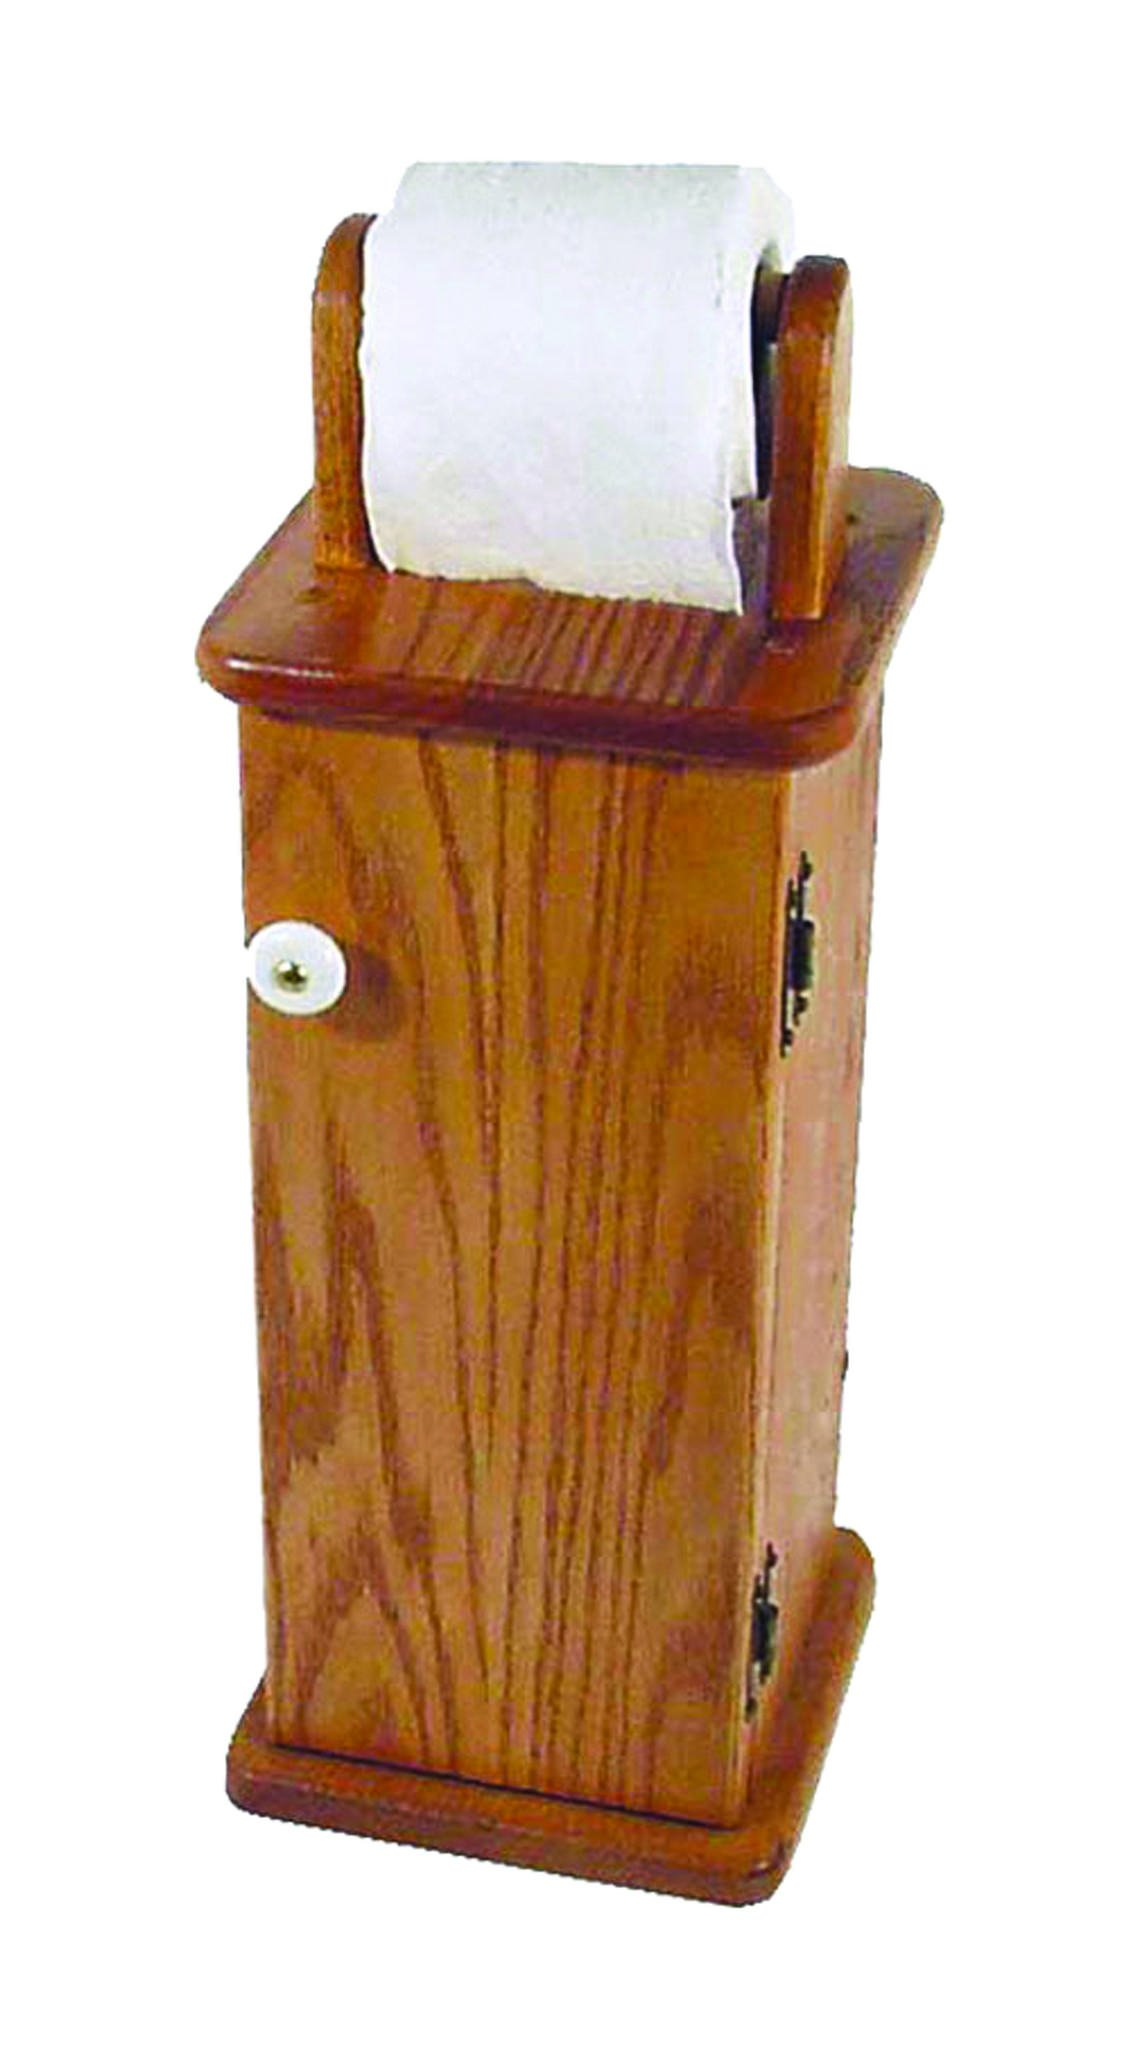 Oak Free Standing Toilet Paper Cabinet / Holder - Amish Made in USA